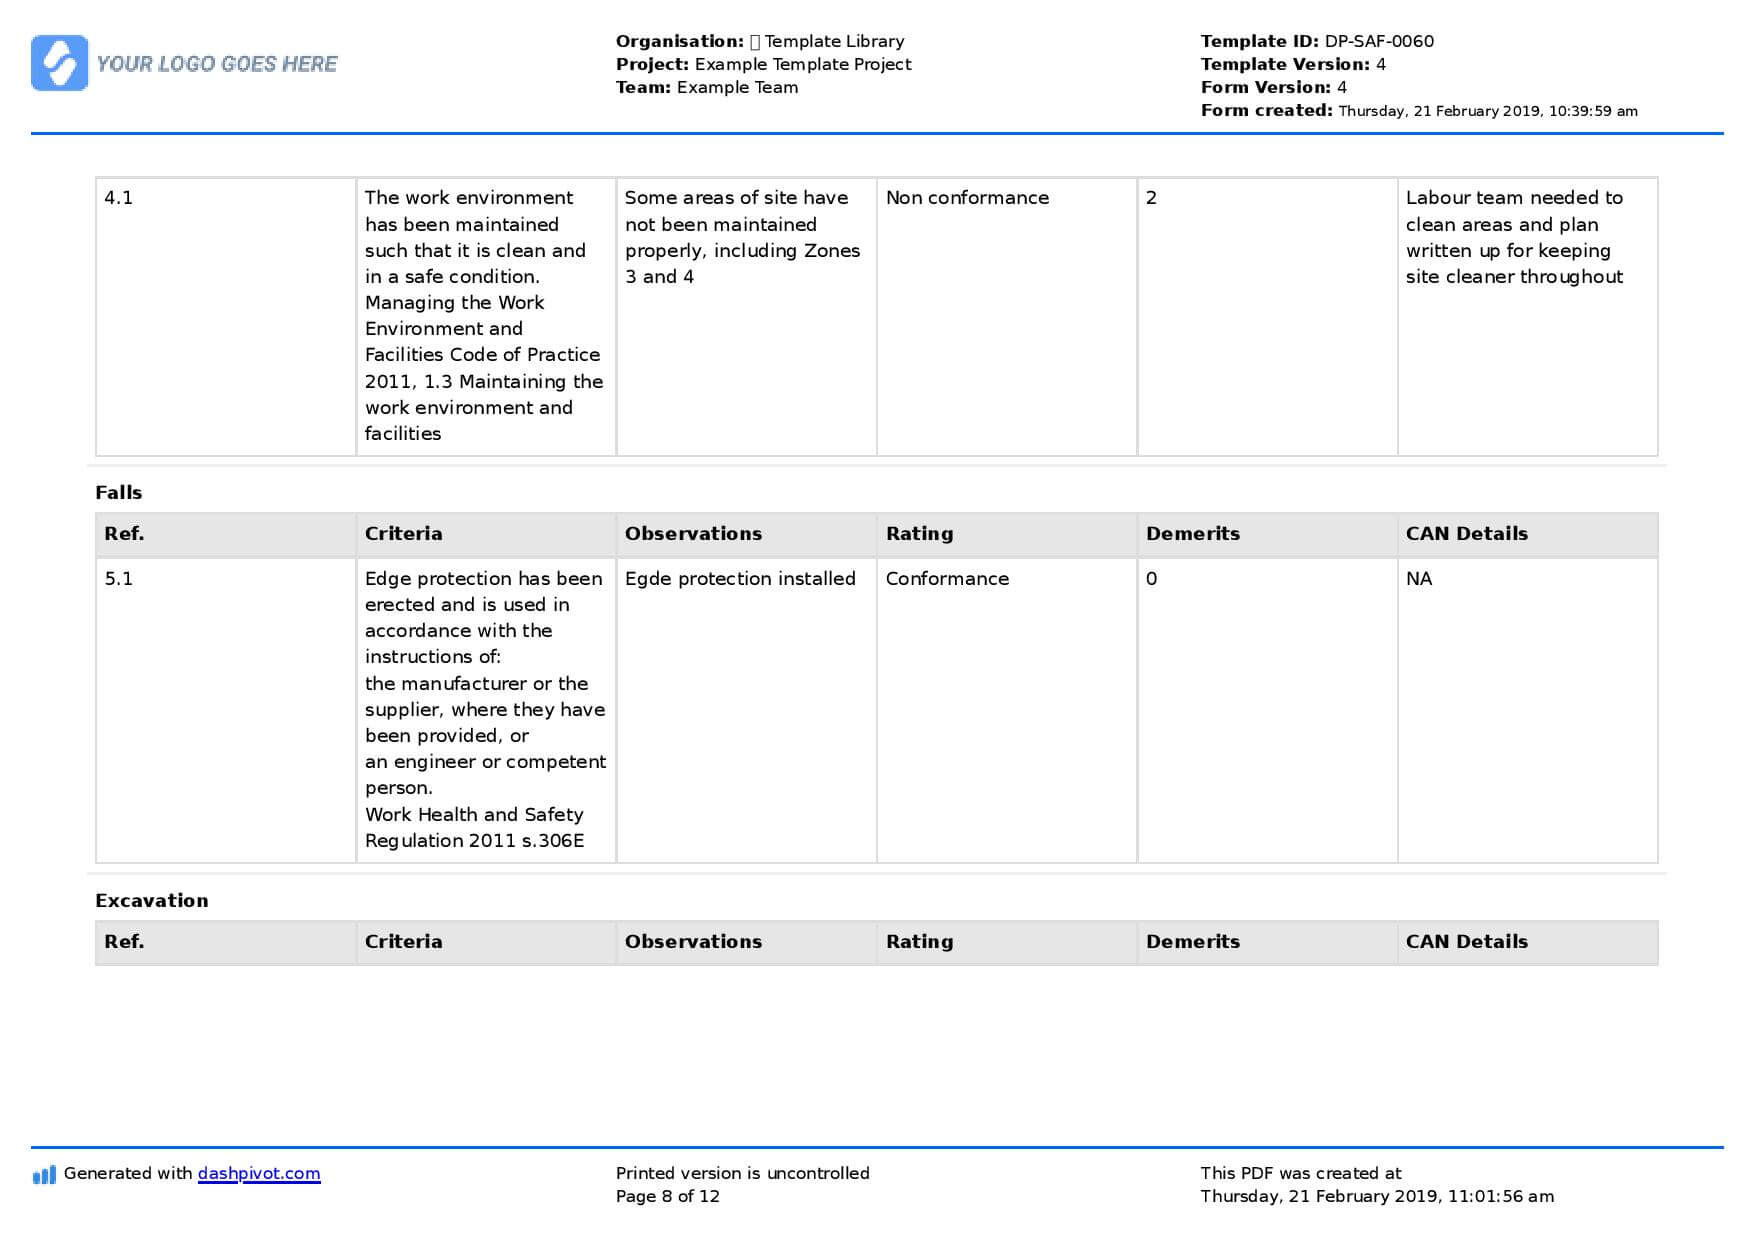 Site Inspection Report: Free Template, Sample And A Proven intended for Engineering Inspection Report Template